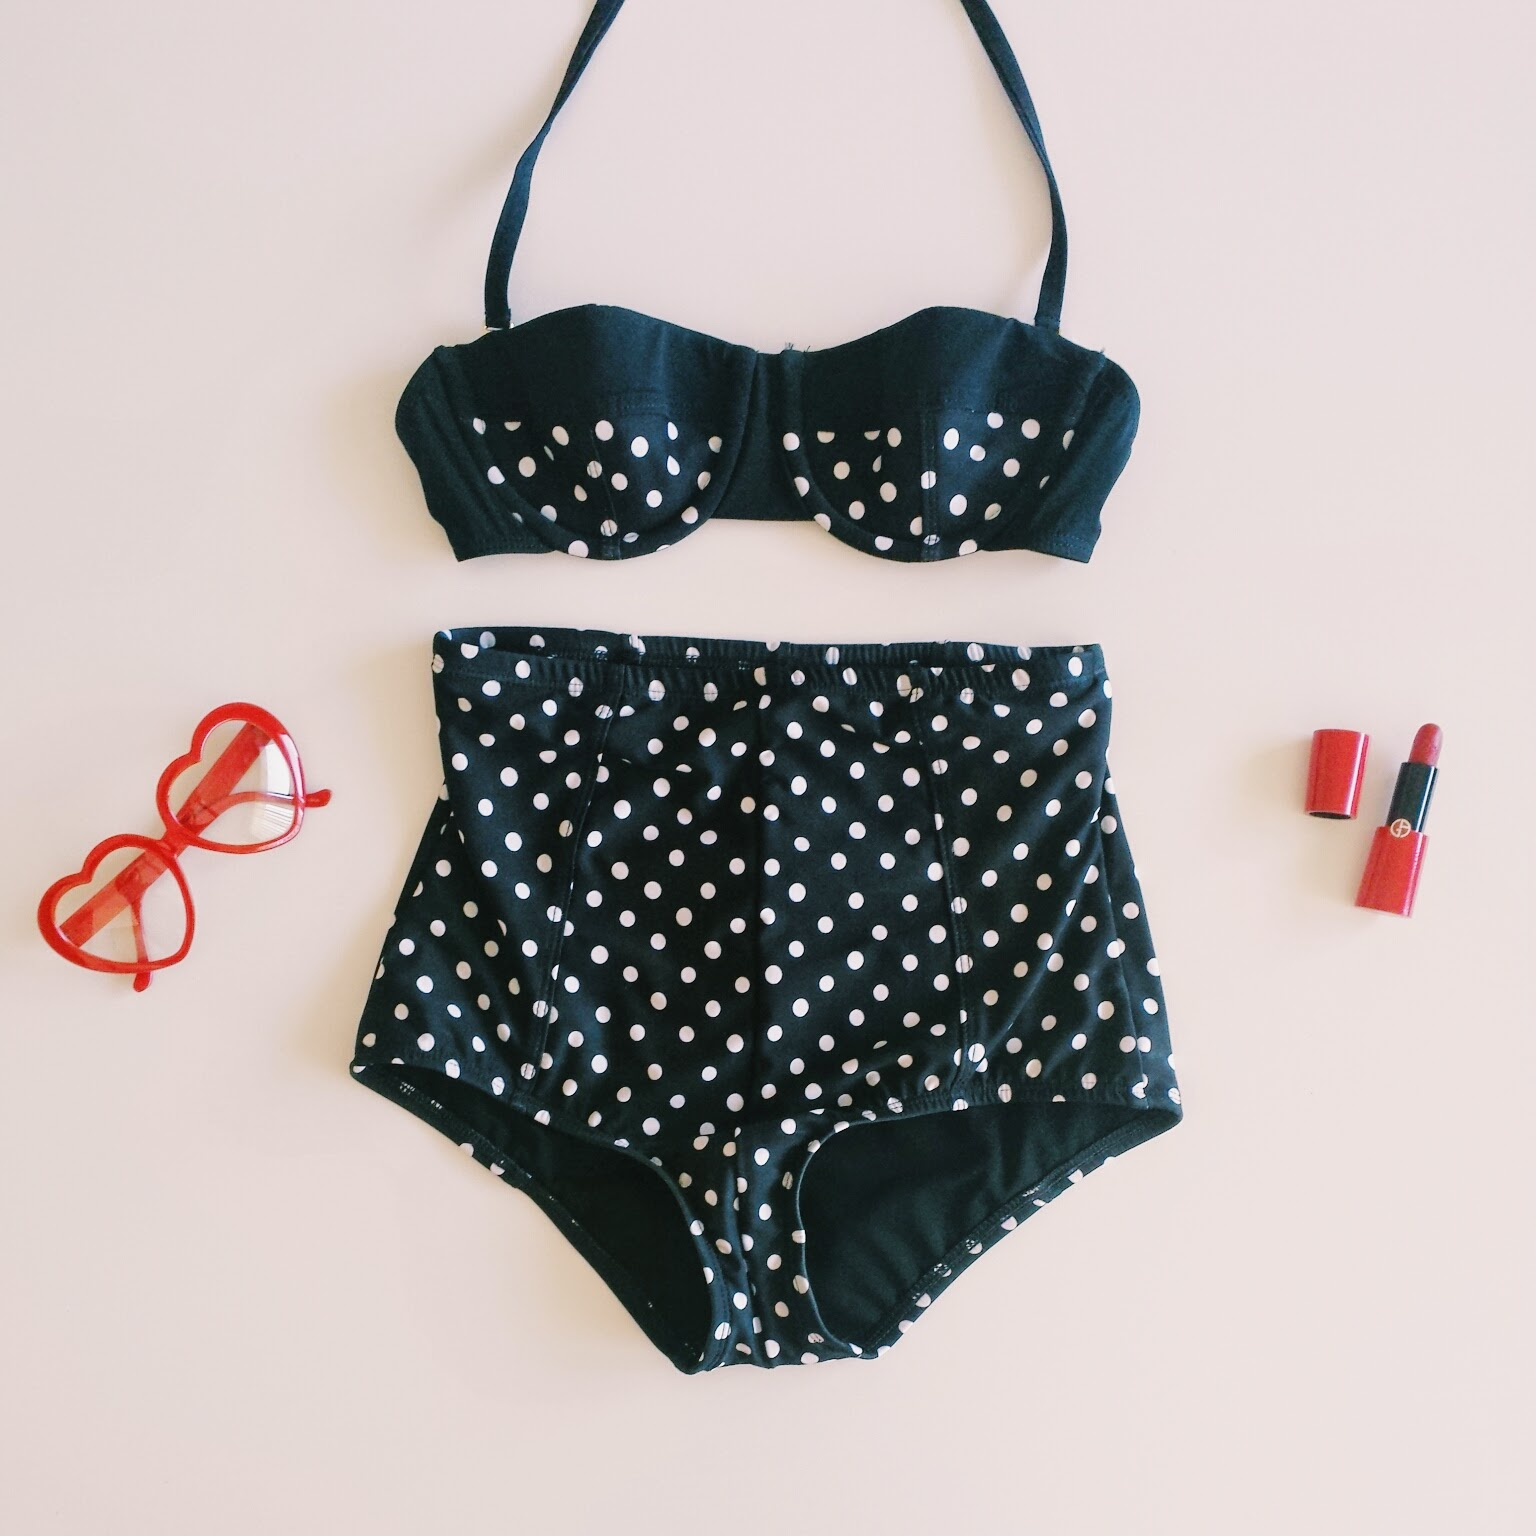 Guess polka dot retro bathing suit